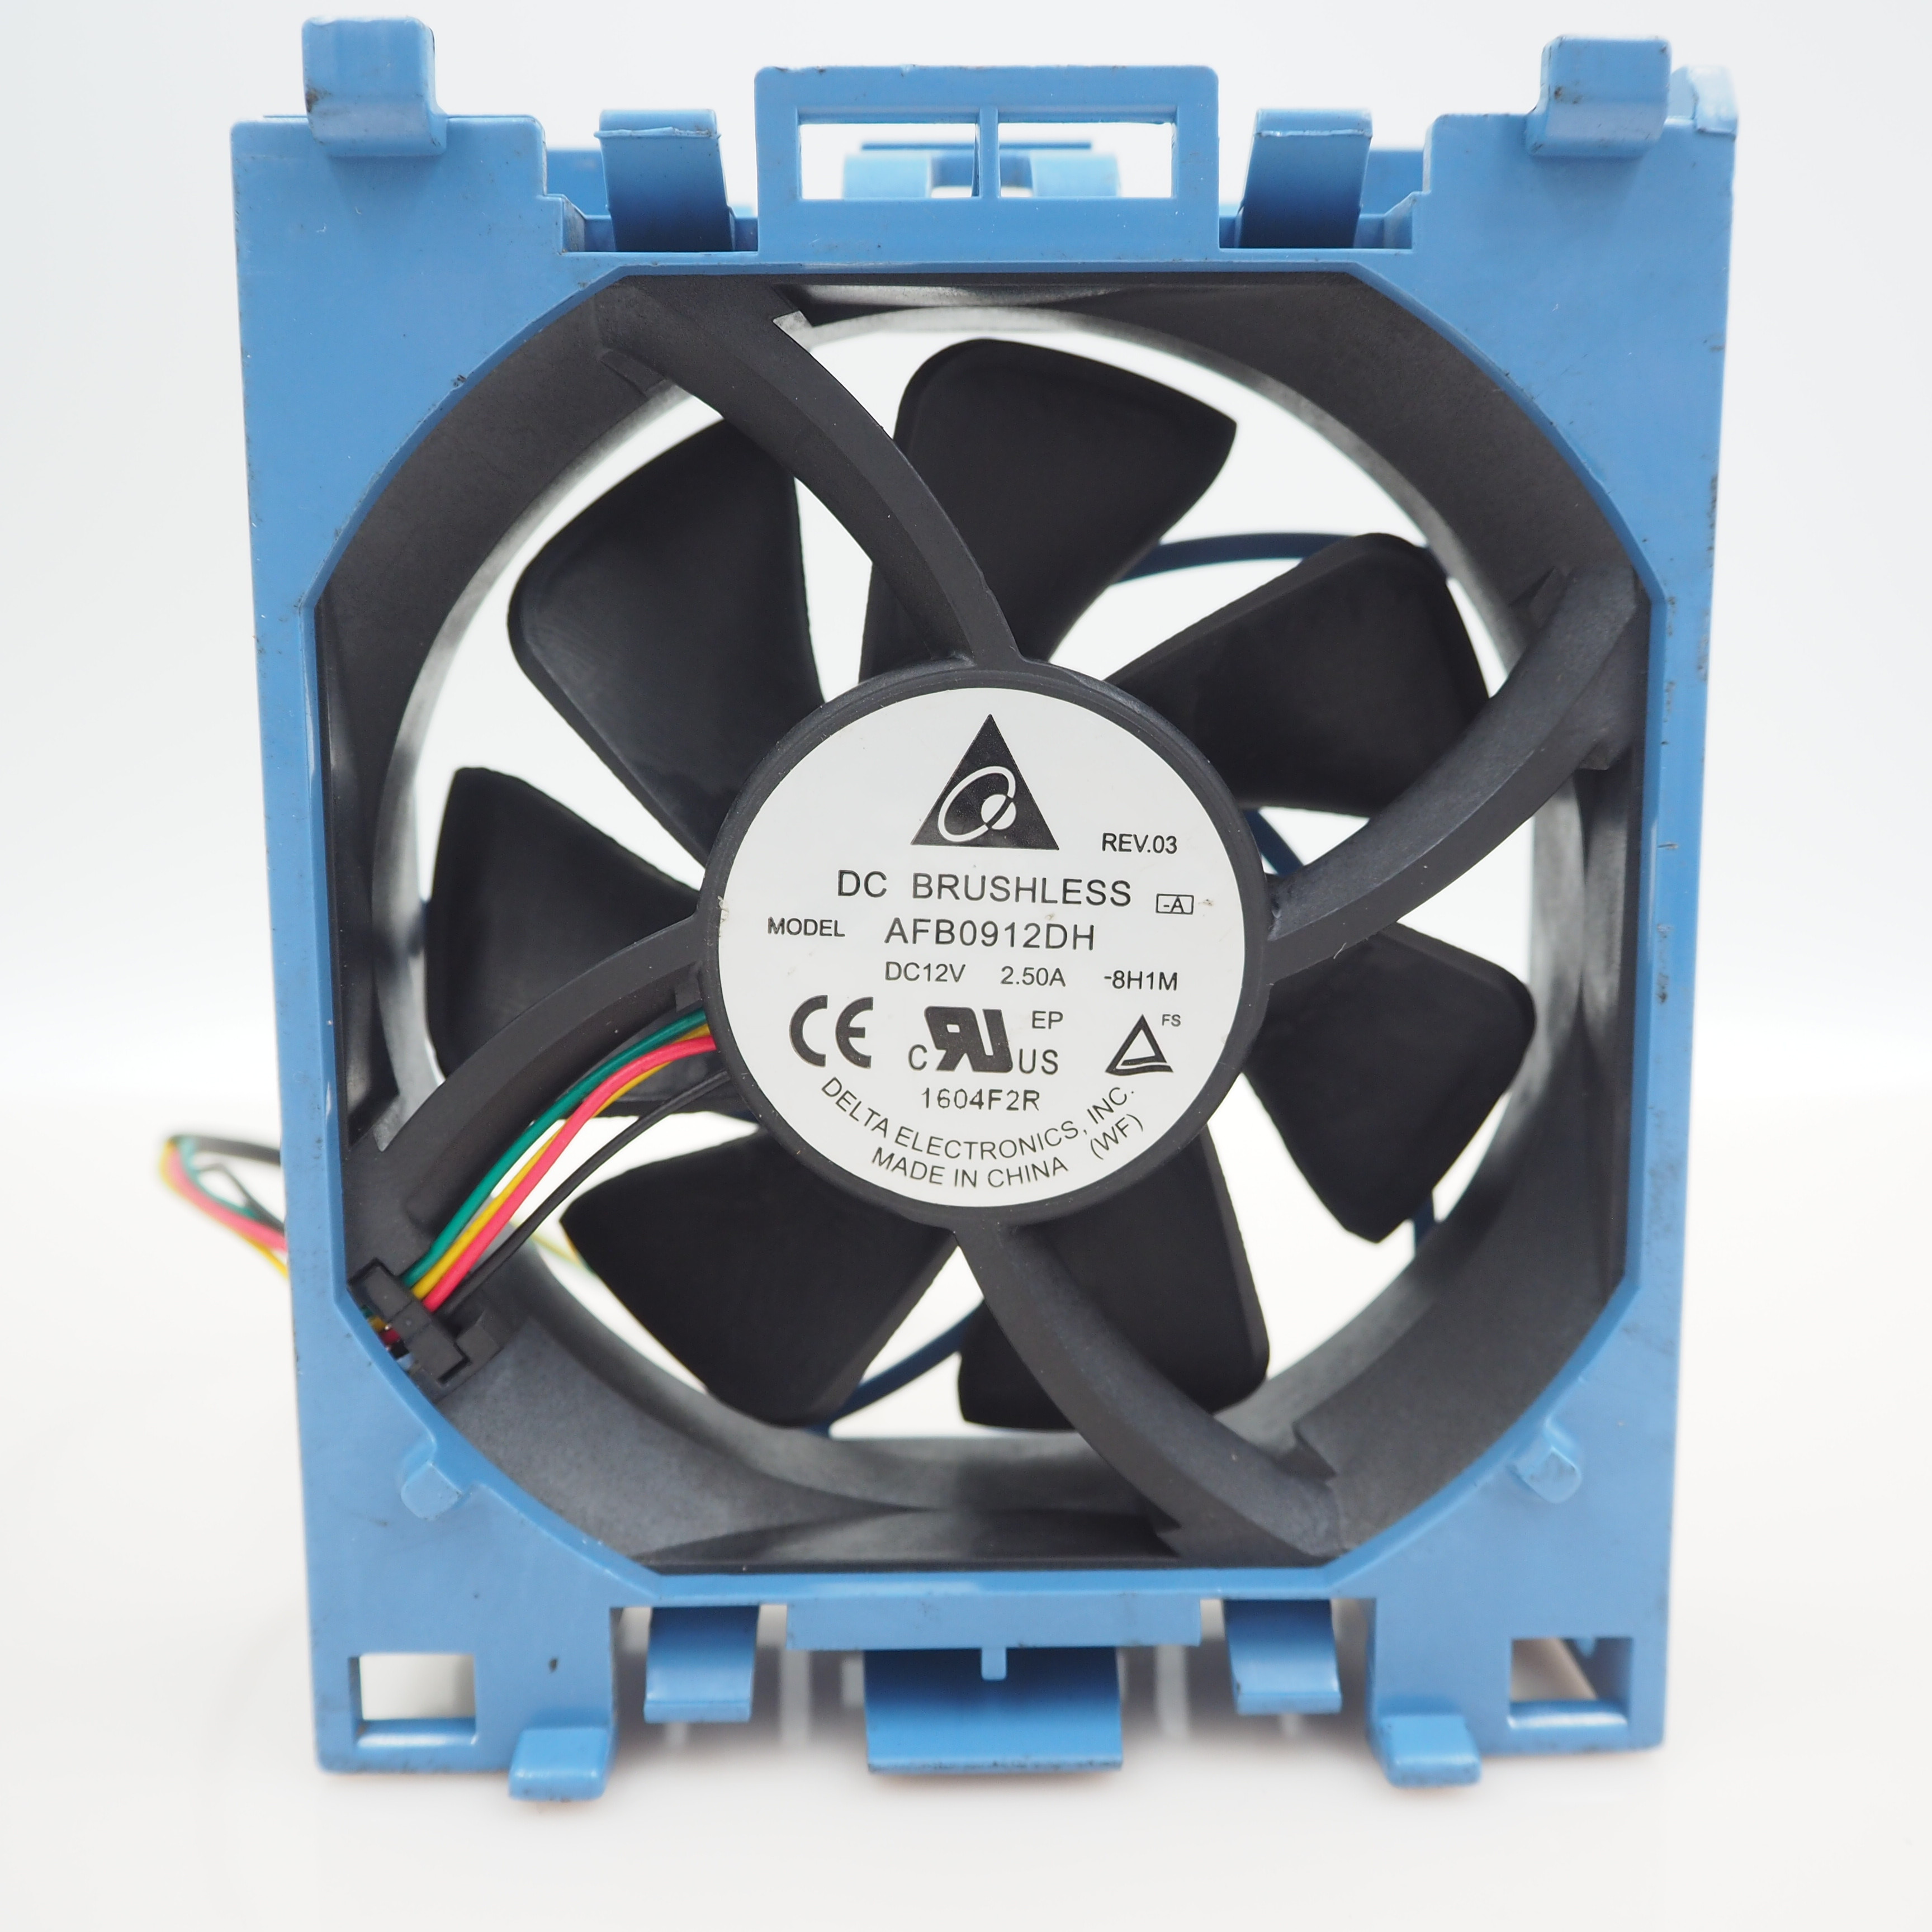 Radiator Cooler CPU Cooling Fan For HP ML350G6 511774-001 DC 12V 9025 AFB0912DH 508110-001 5 Pin For Delta Server 92*92*25mm